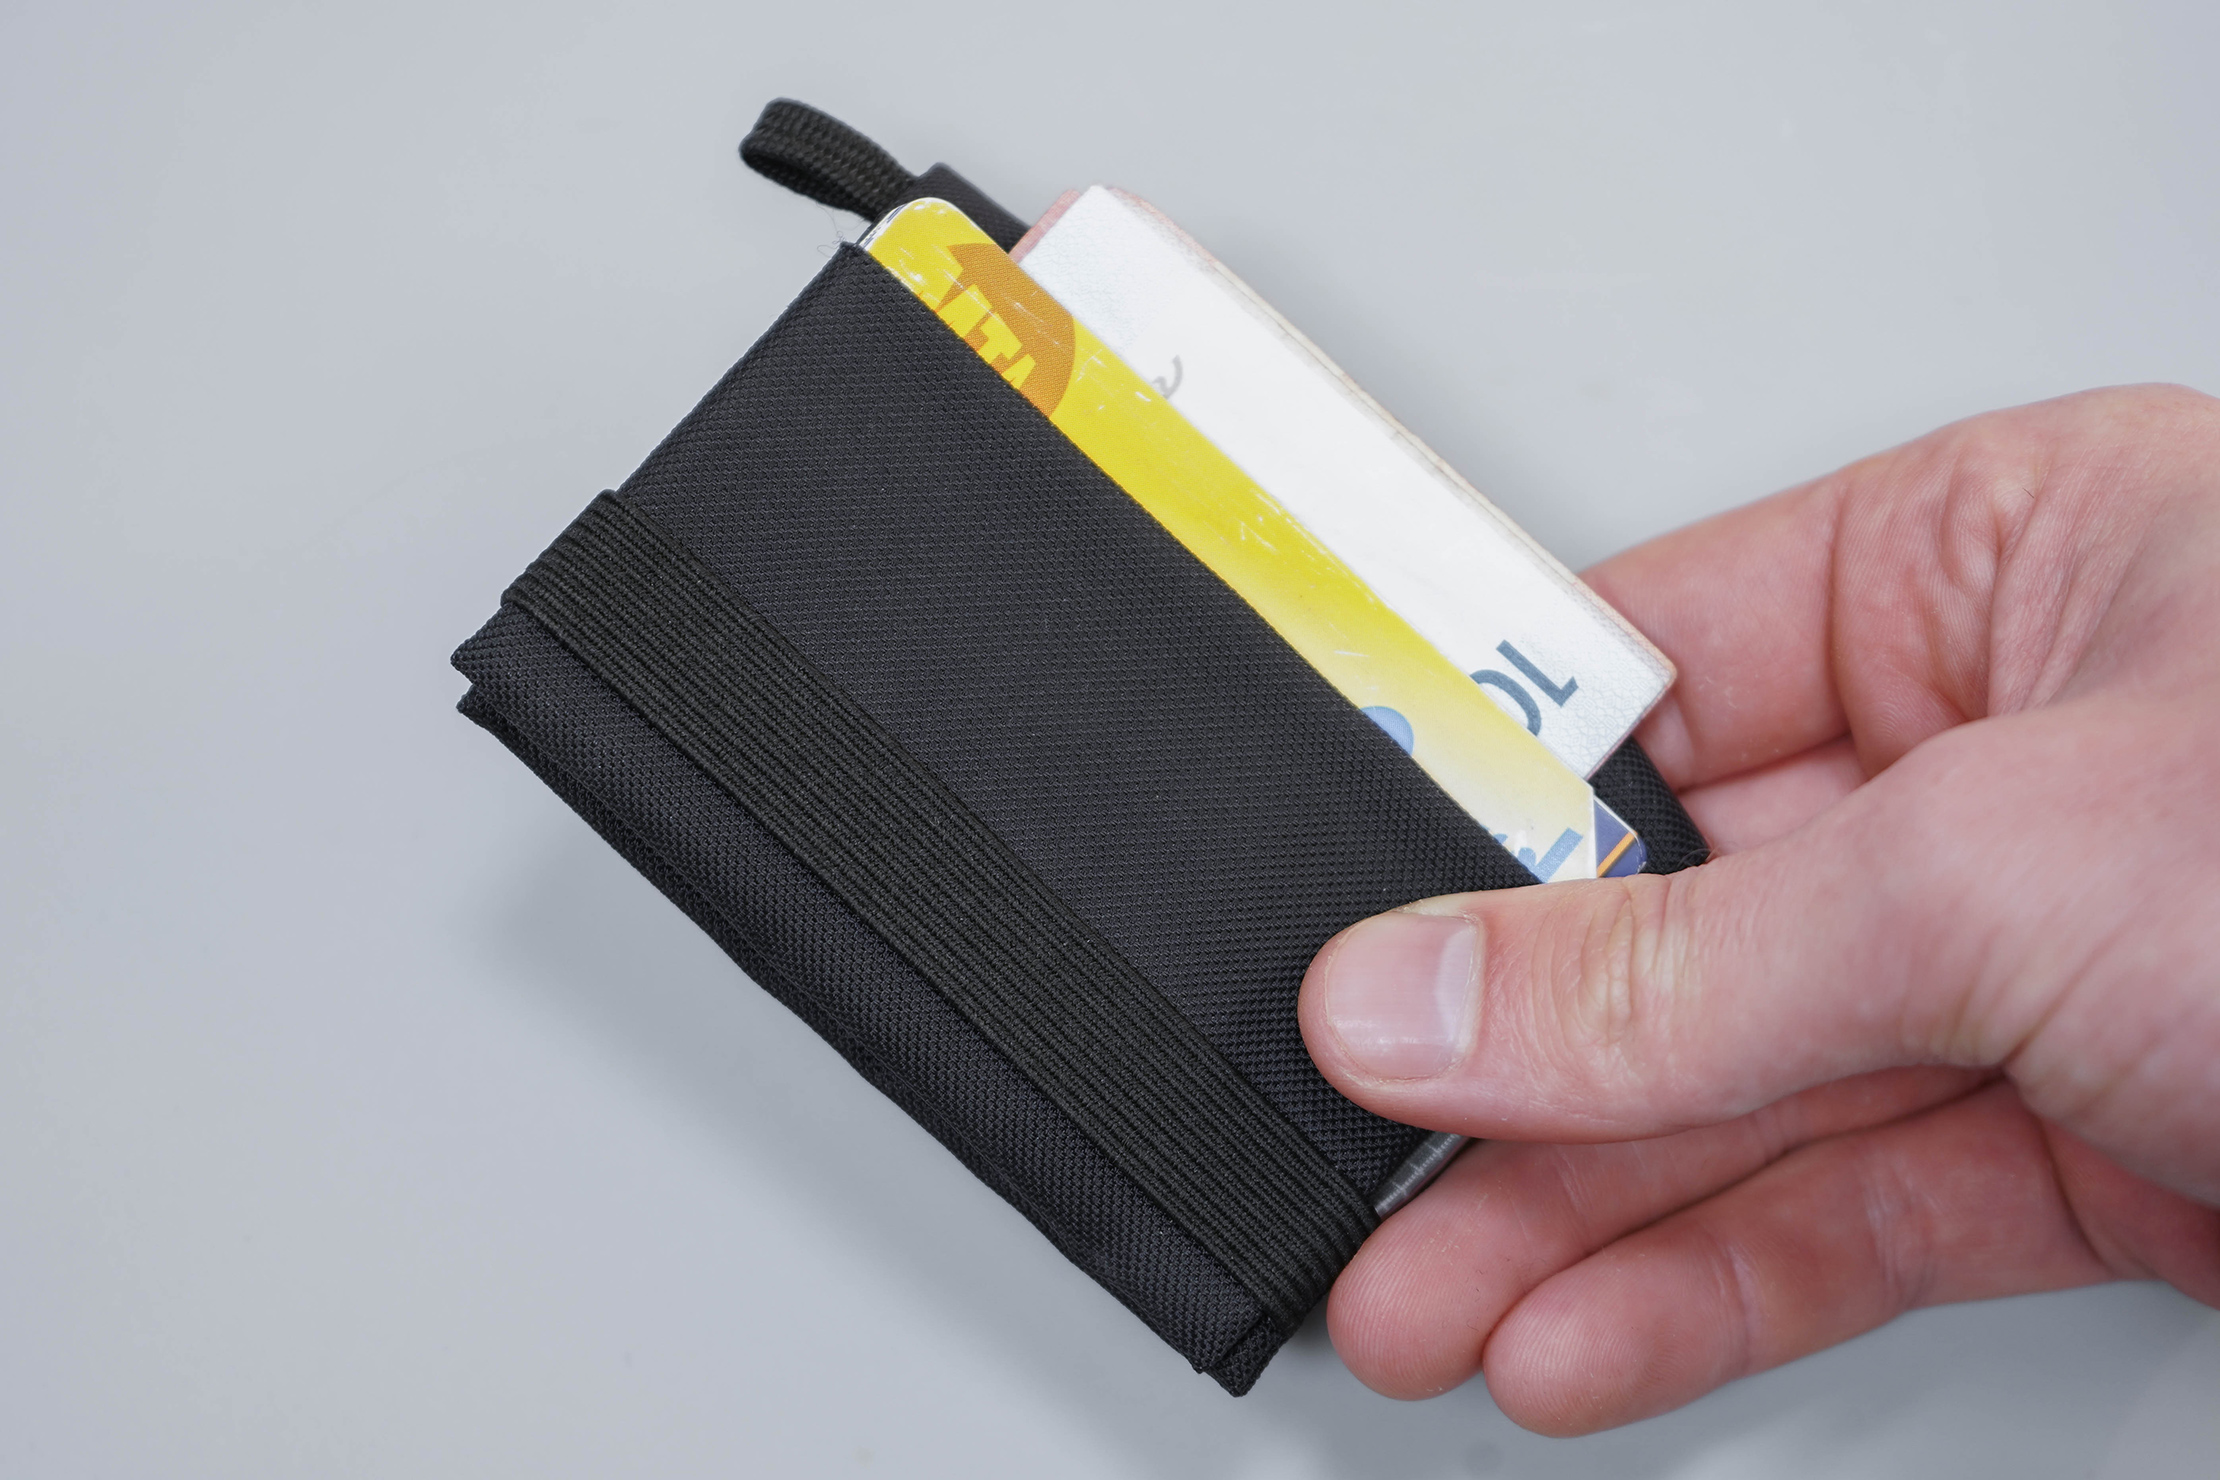 Tom Bihn Nik's Minimalist Wallet Closed